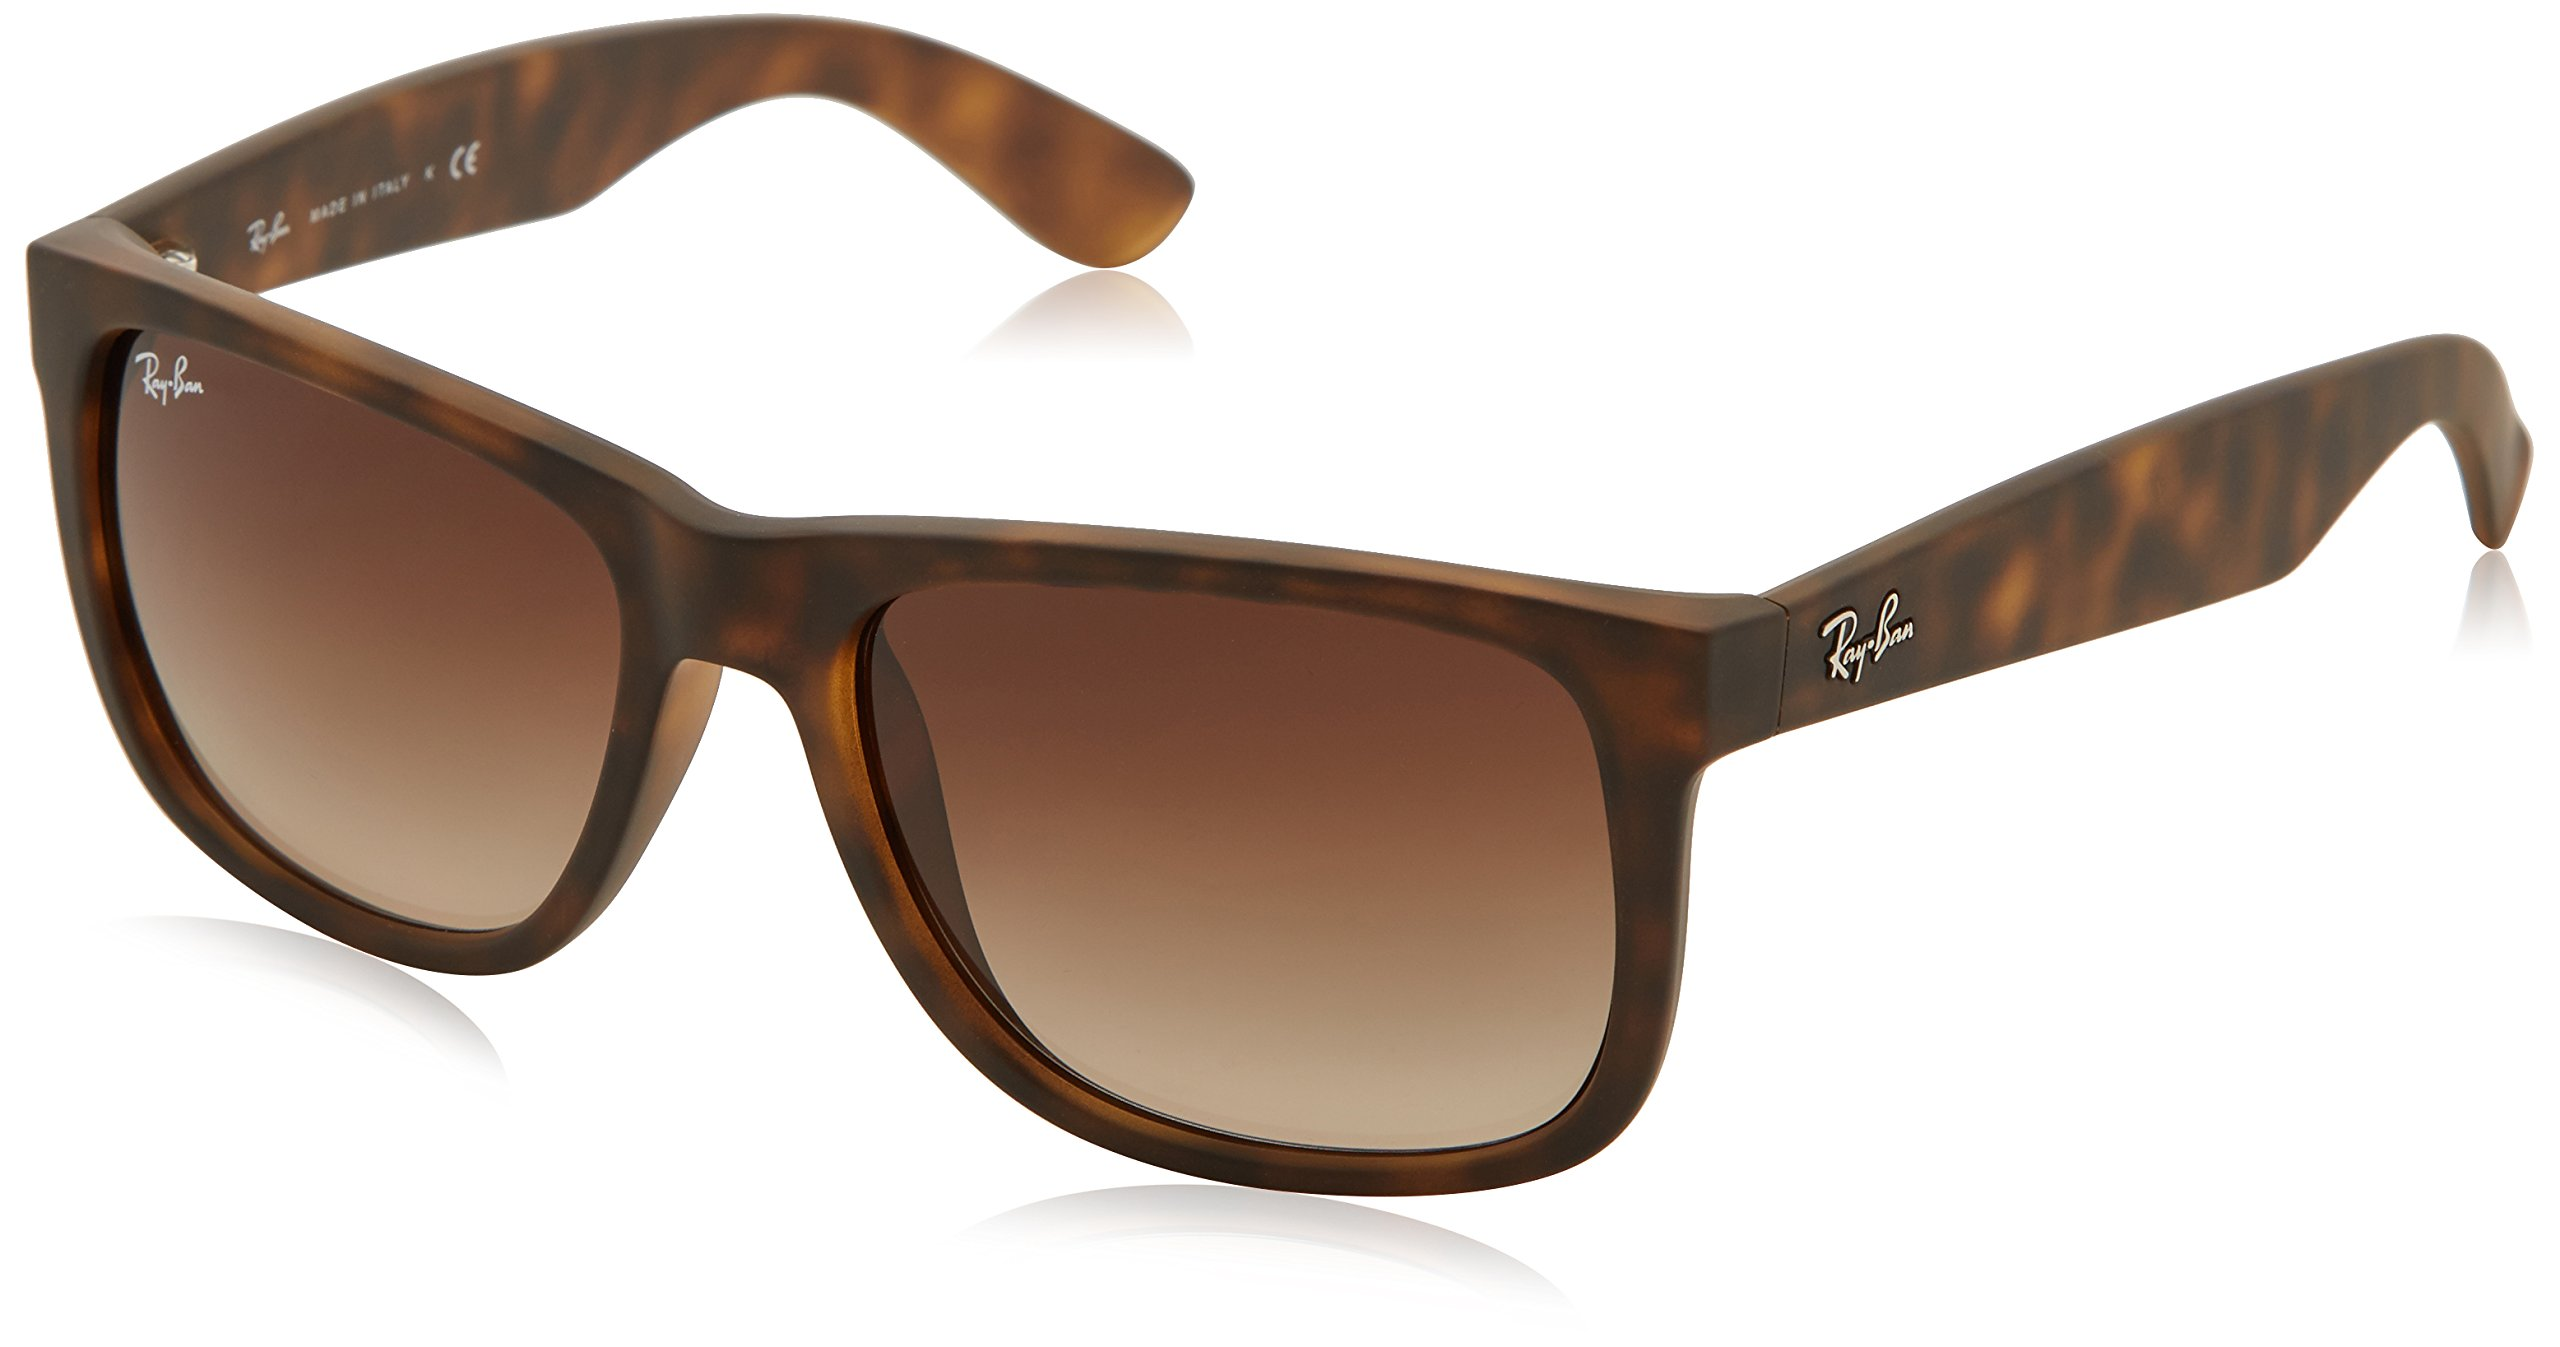 Ray-Ban Justin RB4165 Sunglasses-710/13 Rubber Light Havana/Brown Gradient-55mm